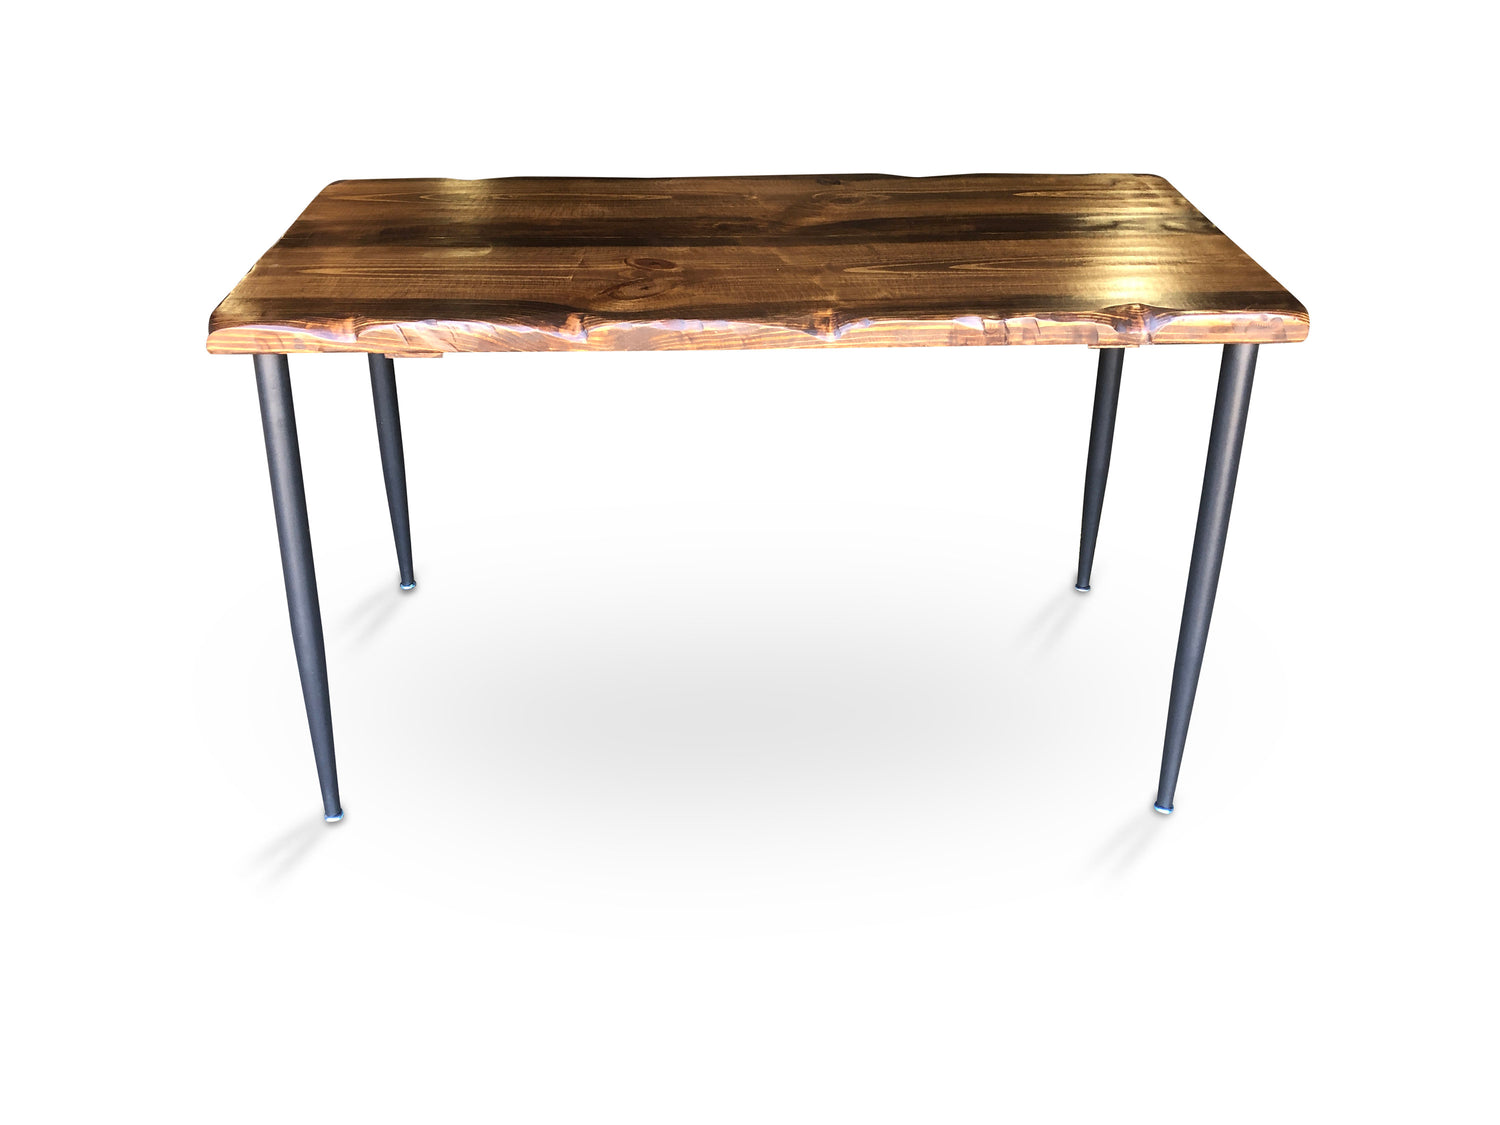 UMBUZÖ Modern Desk - Reclaimed Wood Desk - Live Edge Desk - Walnut Desk